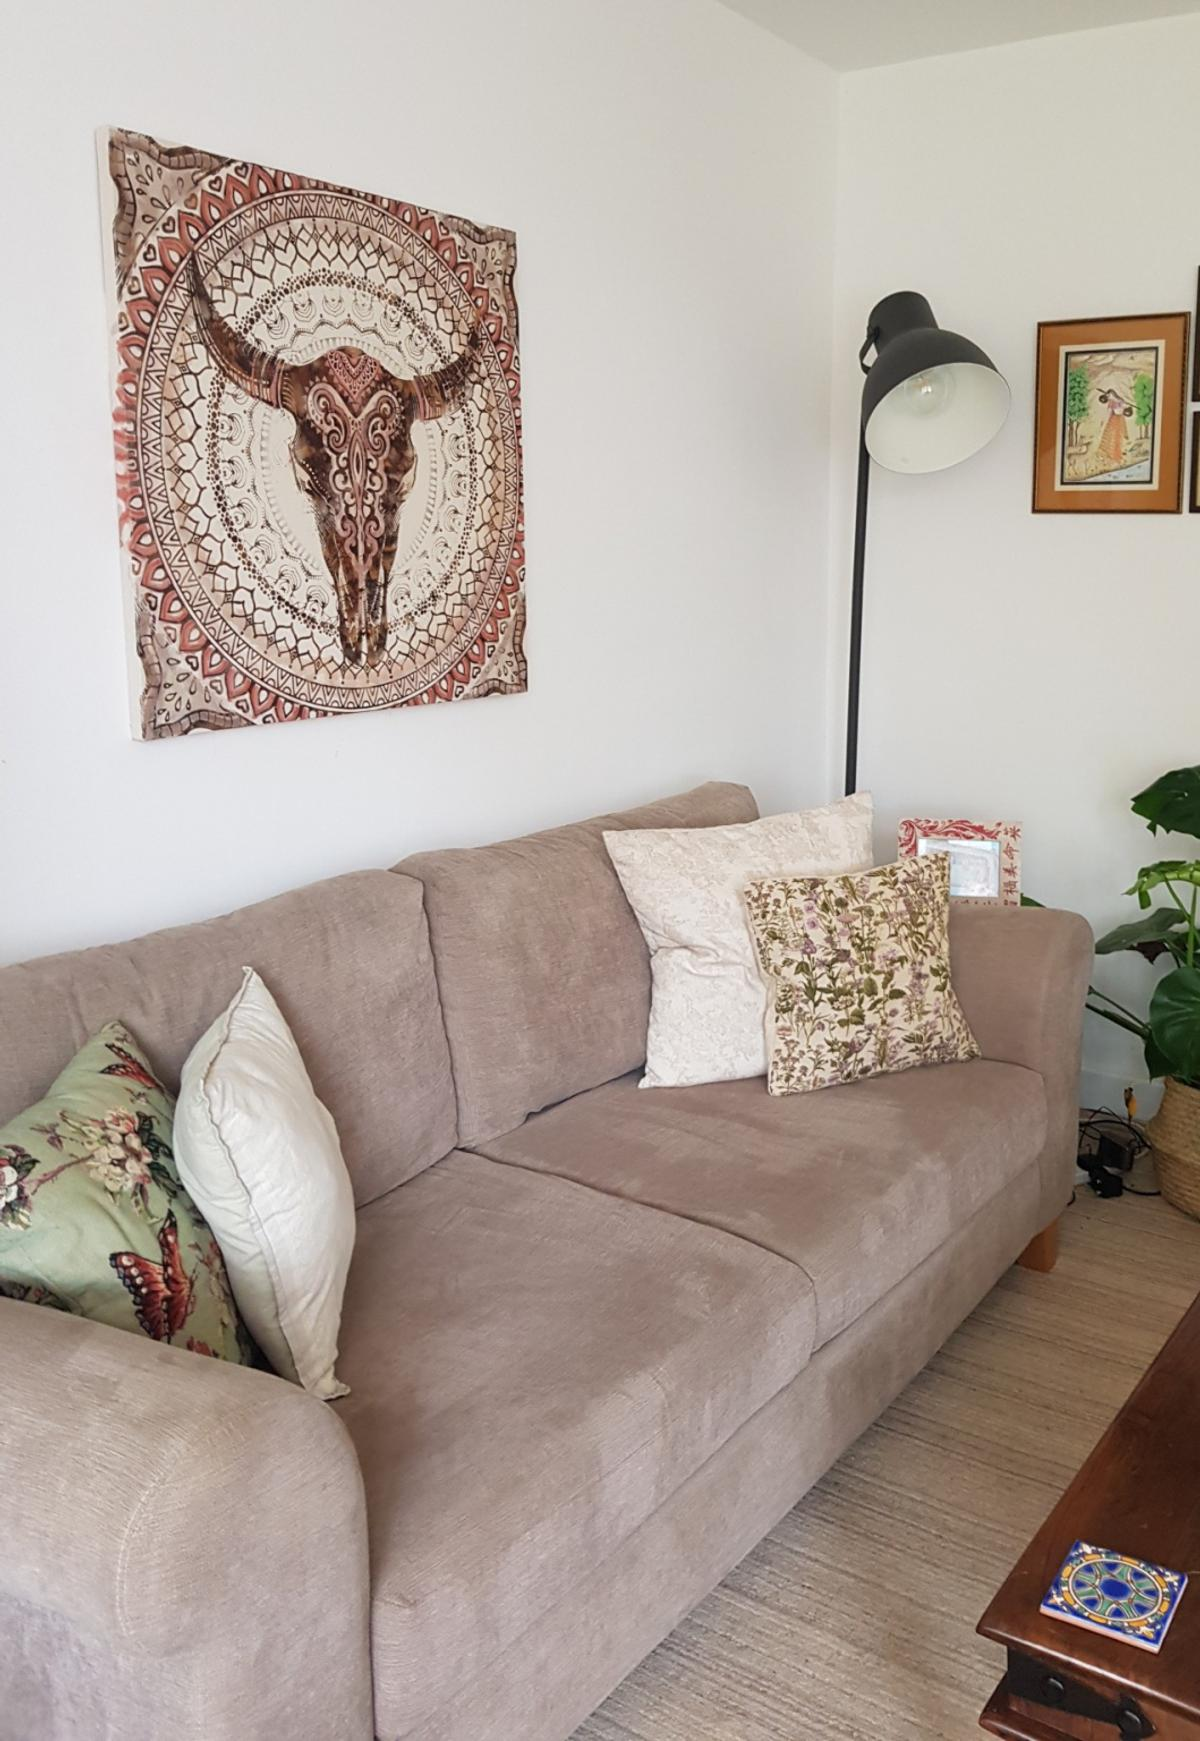 3 - seater sofa for SALE in LS13 Leeds for £140.00 for sale ...